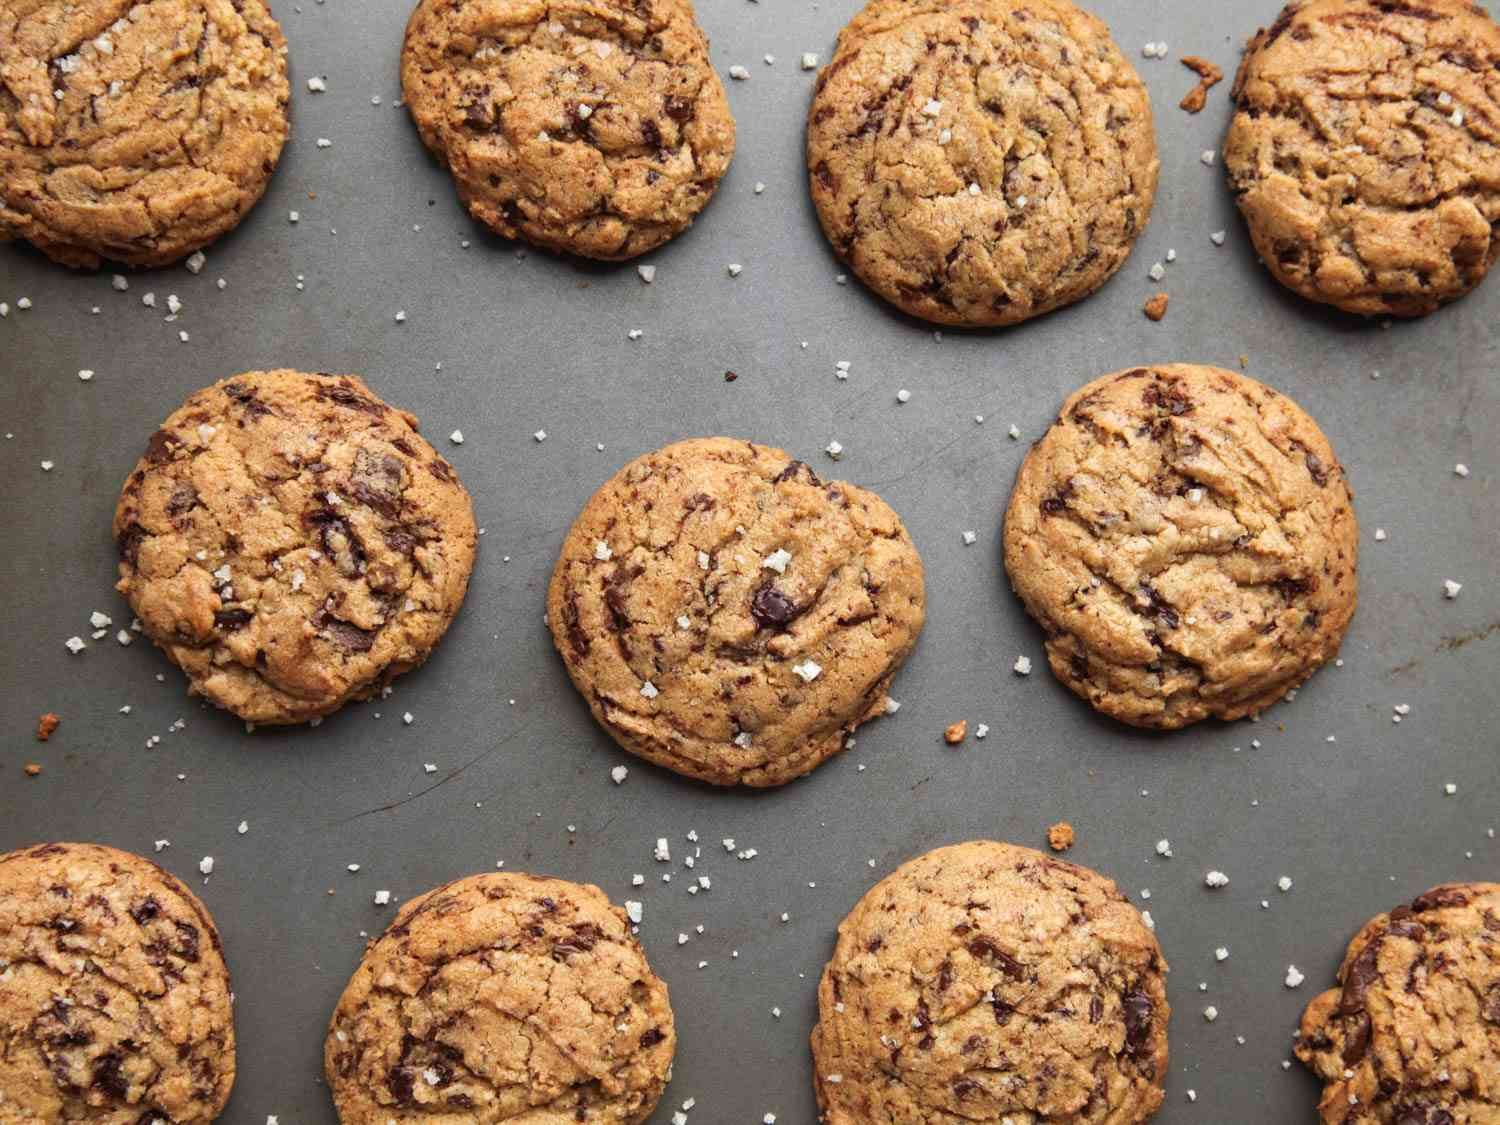 Array of chocolate chip cookies on a grey background.